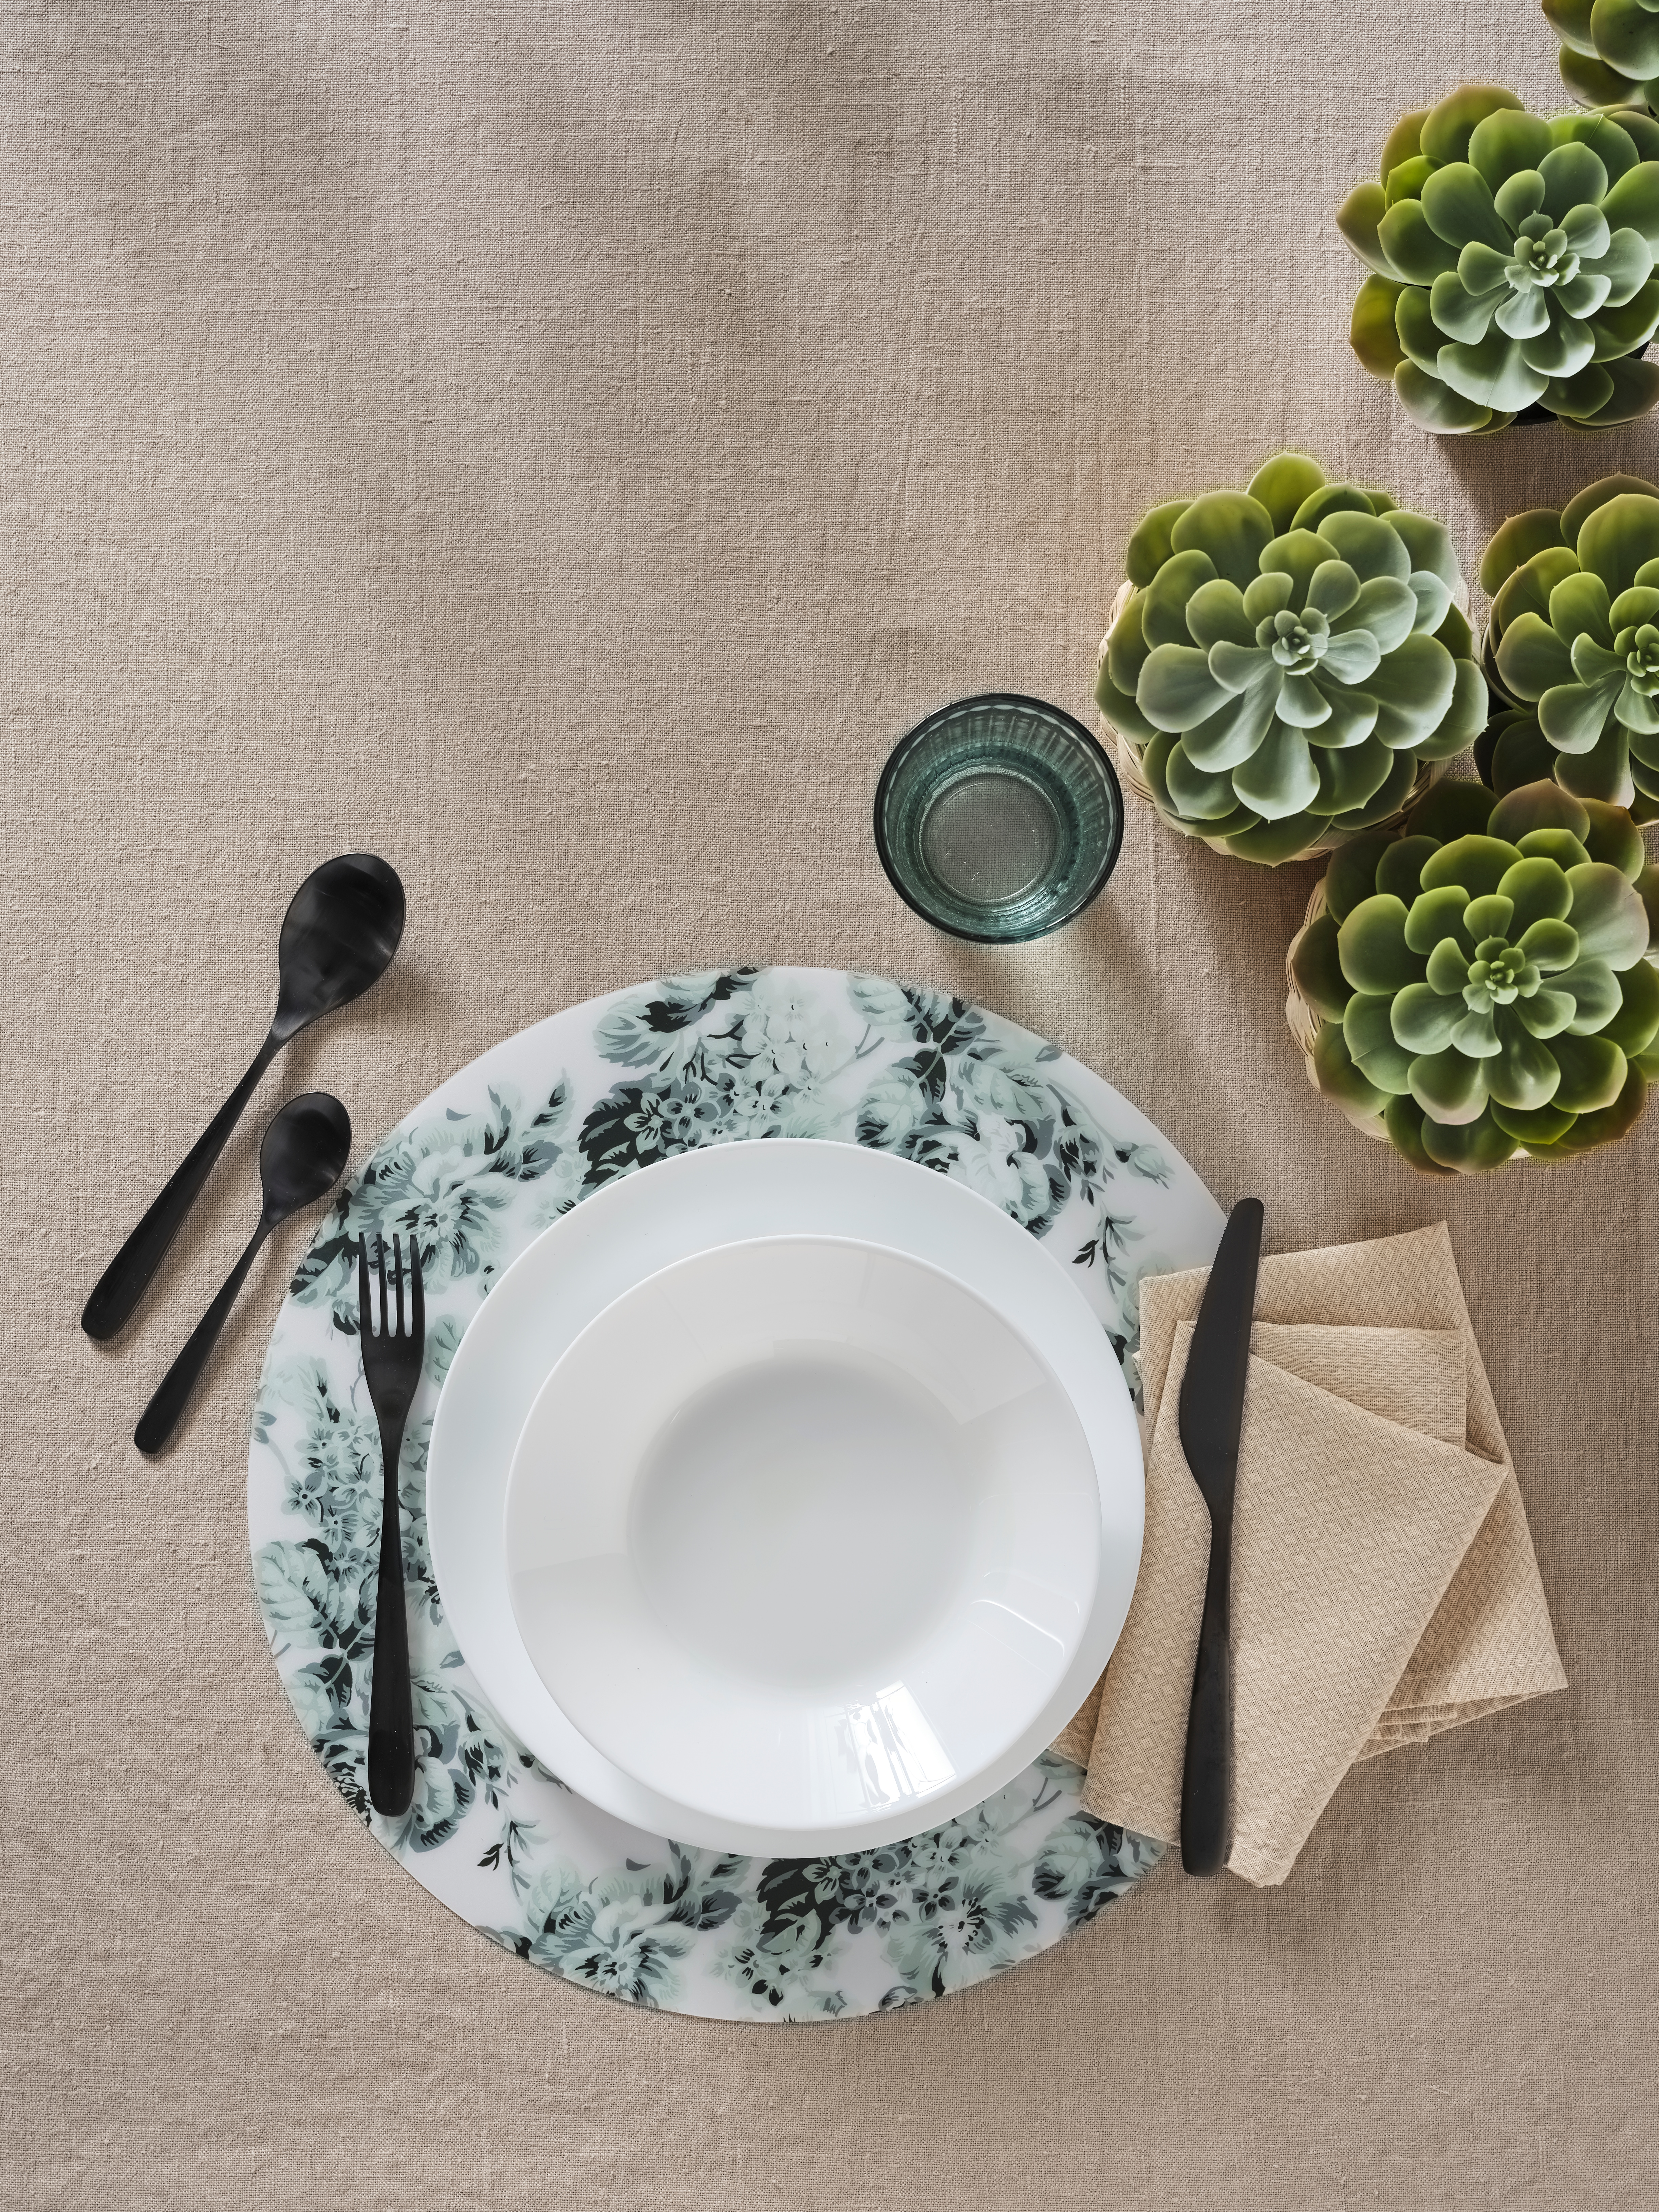 An aerial view of a white OFTAST deep plate on a larger plate and a place mat. It is by cutlery, napkins, a glass and plants.